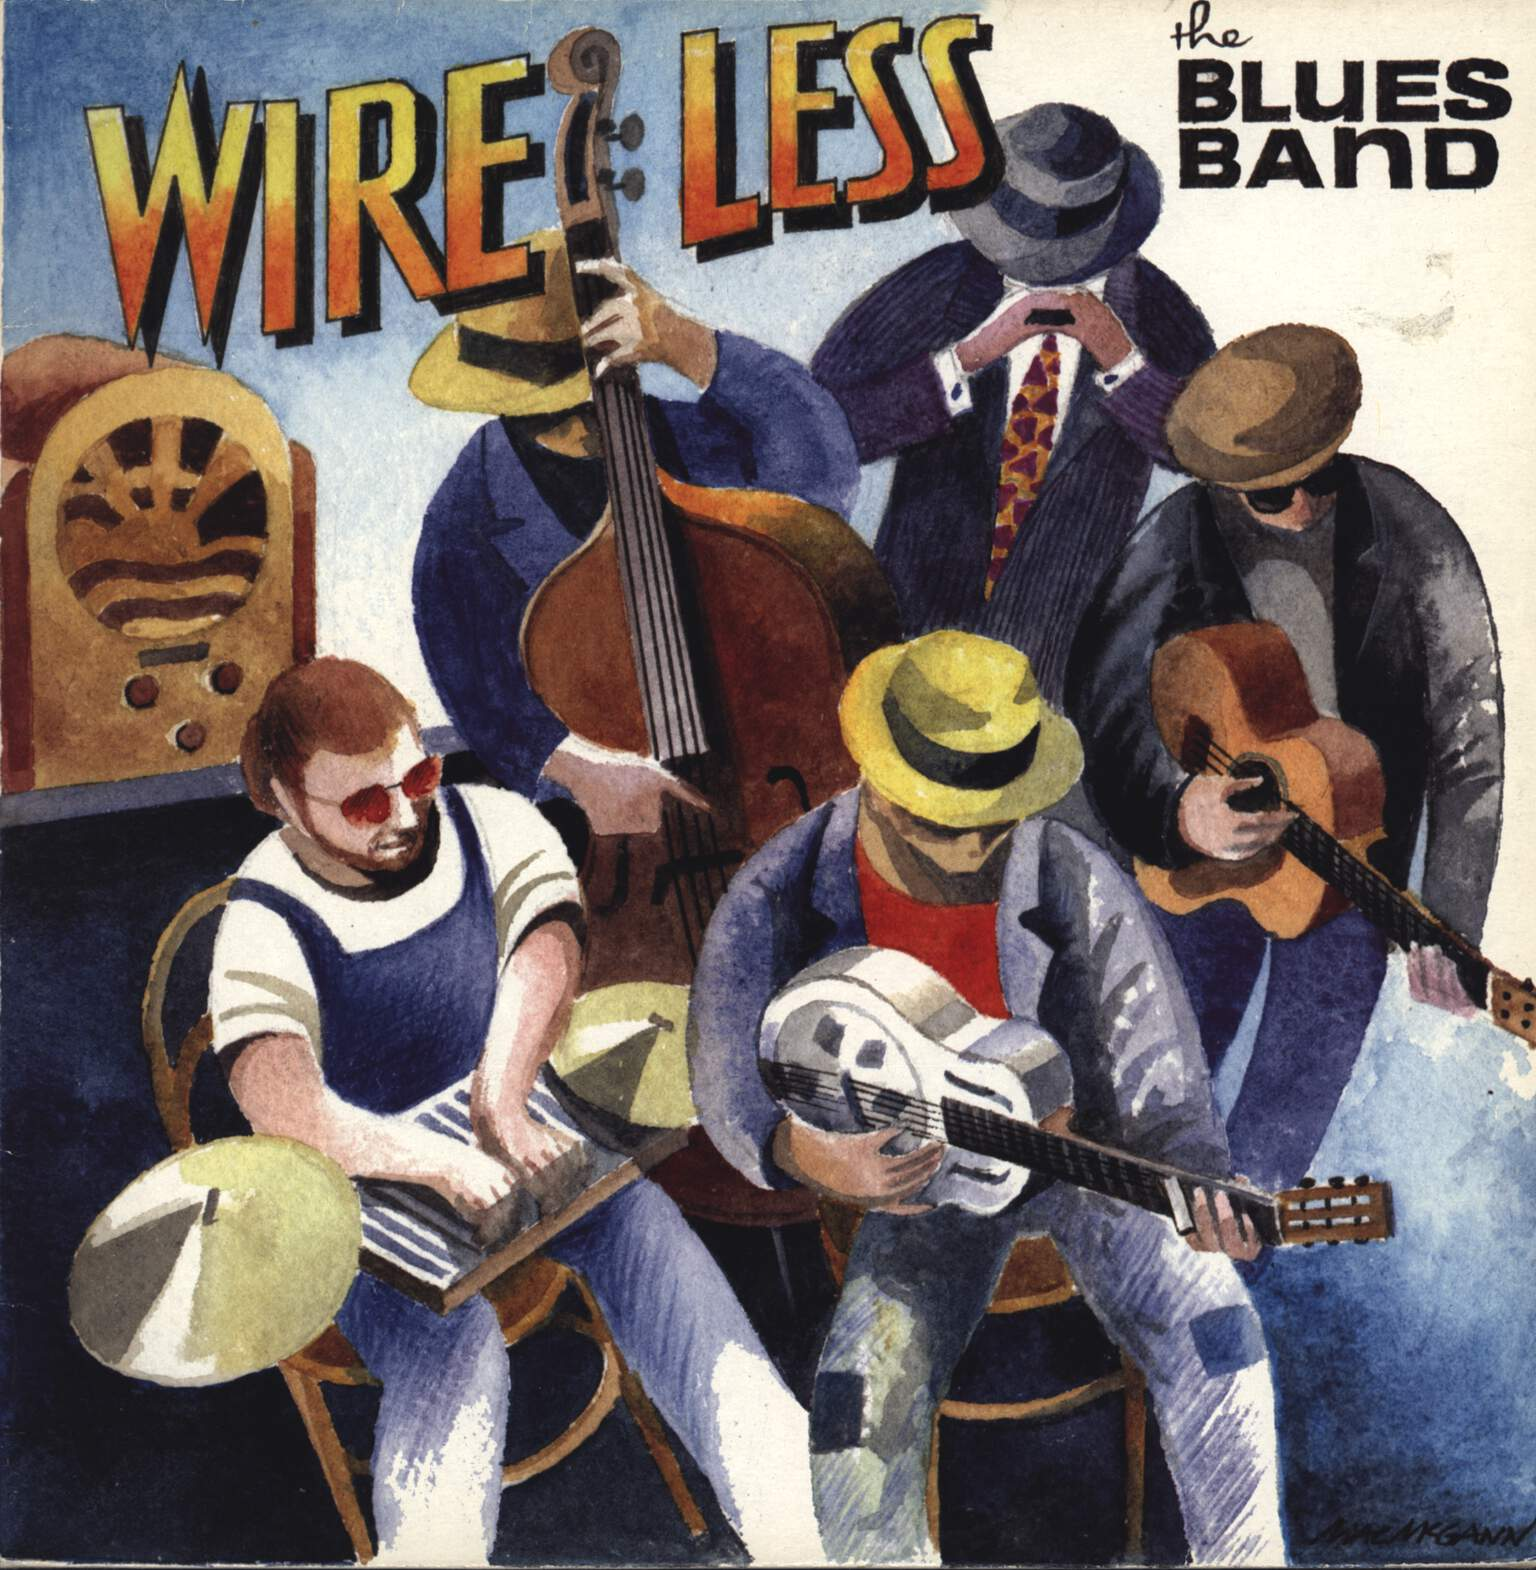 The Blues Band: Wire Less, LP (Vinyl)